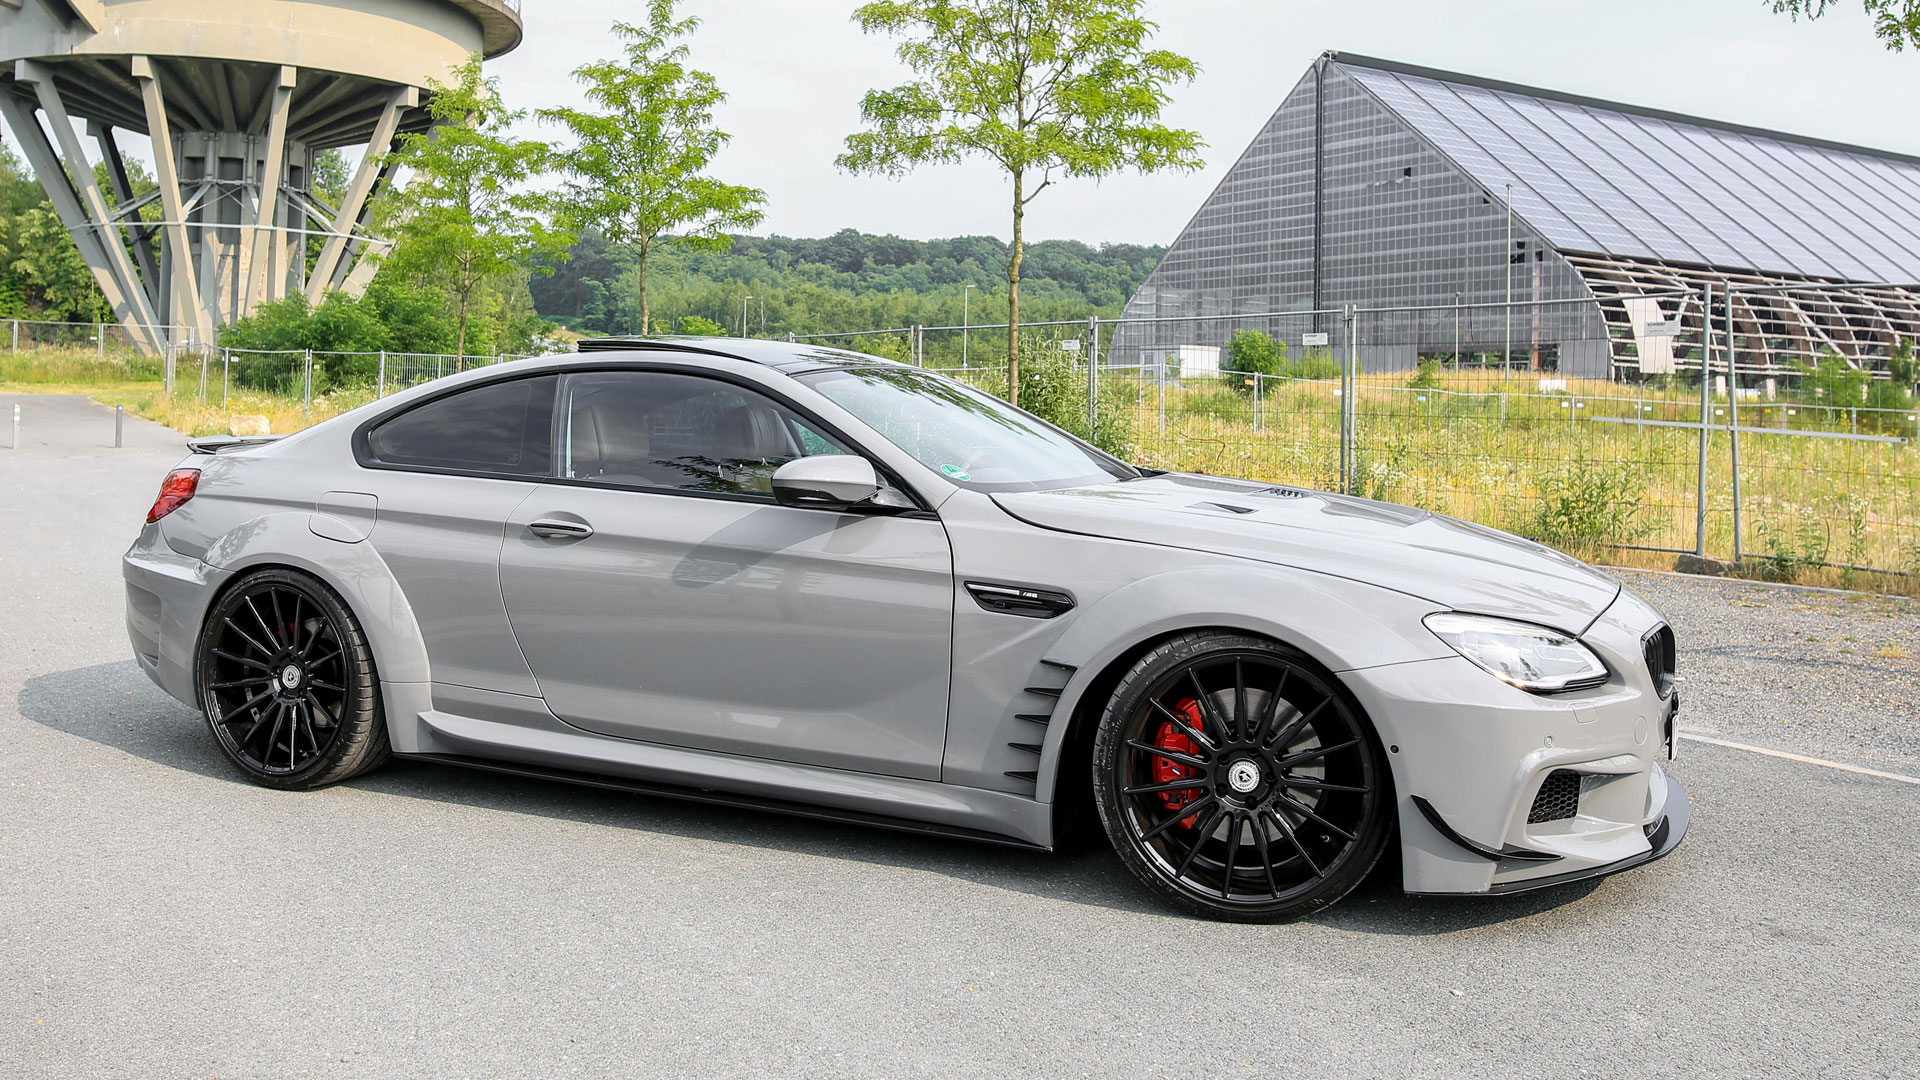 Bmw 650i F13 Coupe Nardograu Tuning Pd6xx Widebody Aerodynamic Kit Artform Af 401 In 9x21 10 5x21 M D Exclusive Cardesign